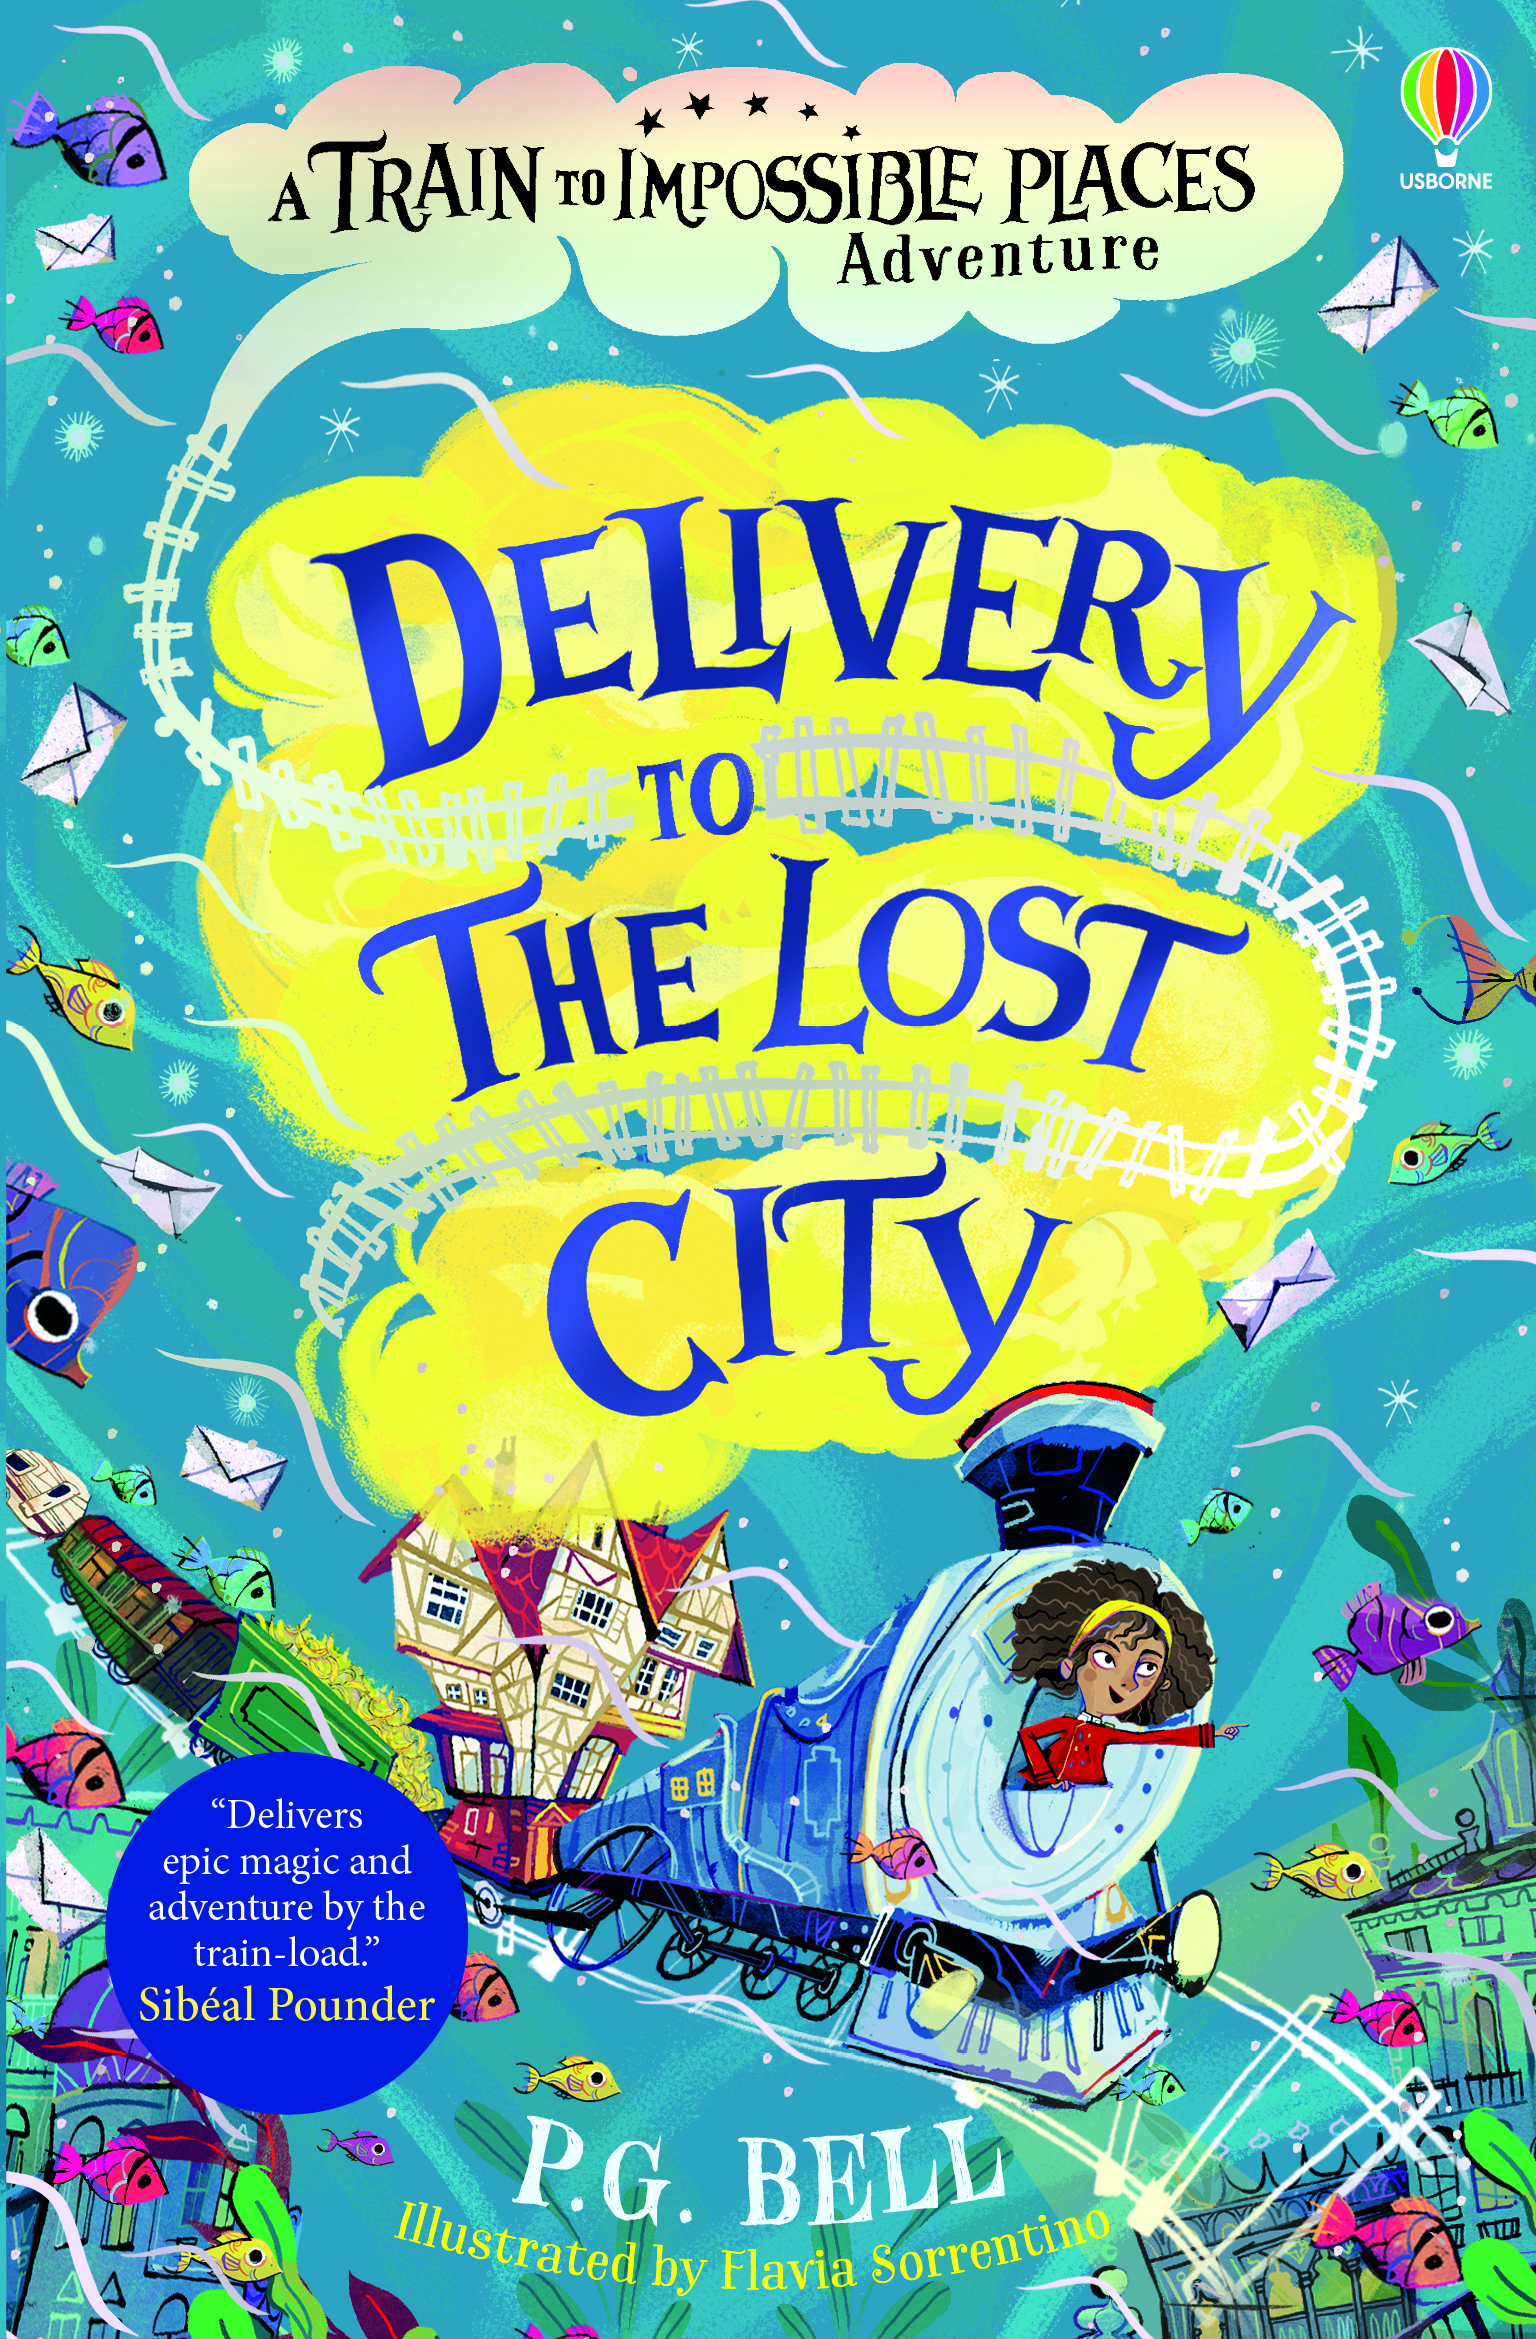 The cover of the UK edition of Delivery to the Lost City. Suzy waves from the front of an old steam train, which is travelling underwater. Brightly coloured fish and the roofs of old buildings surround it.